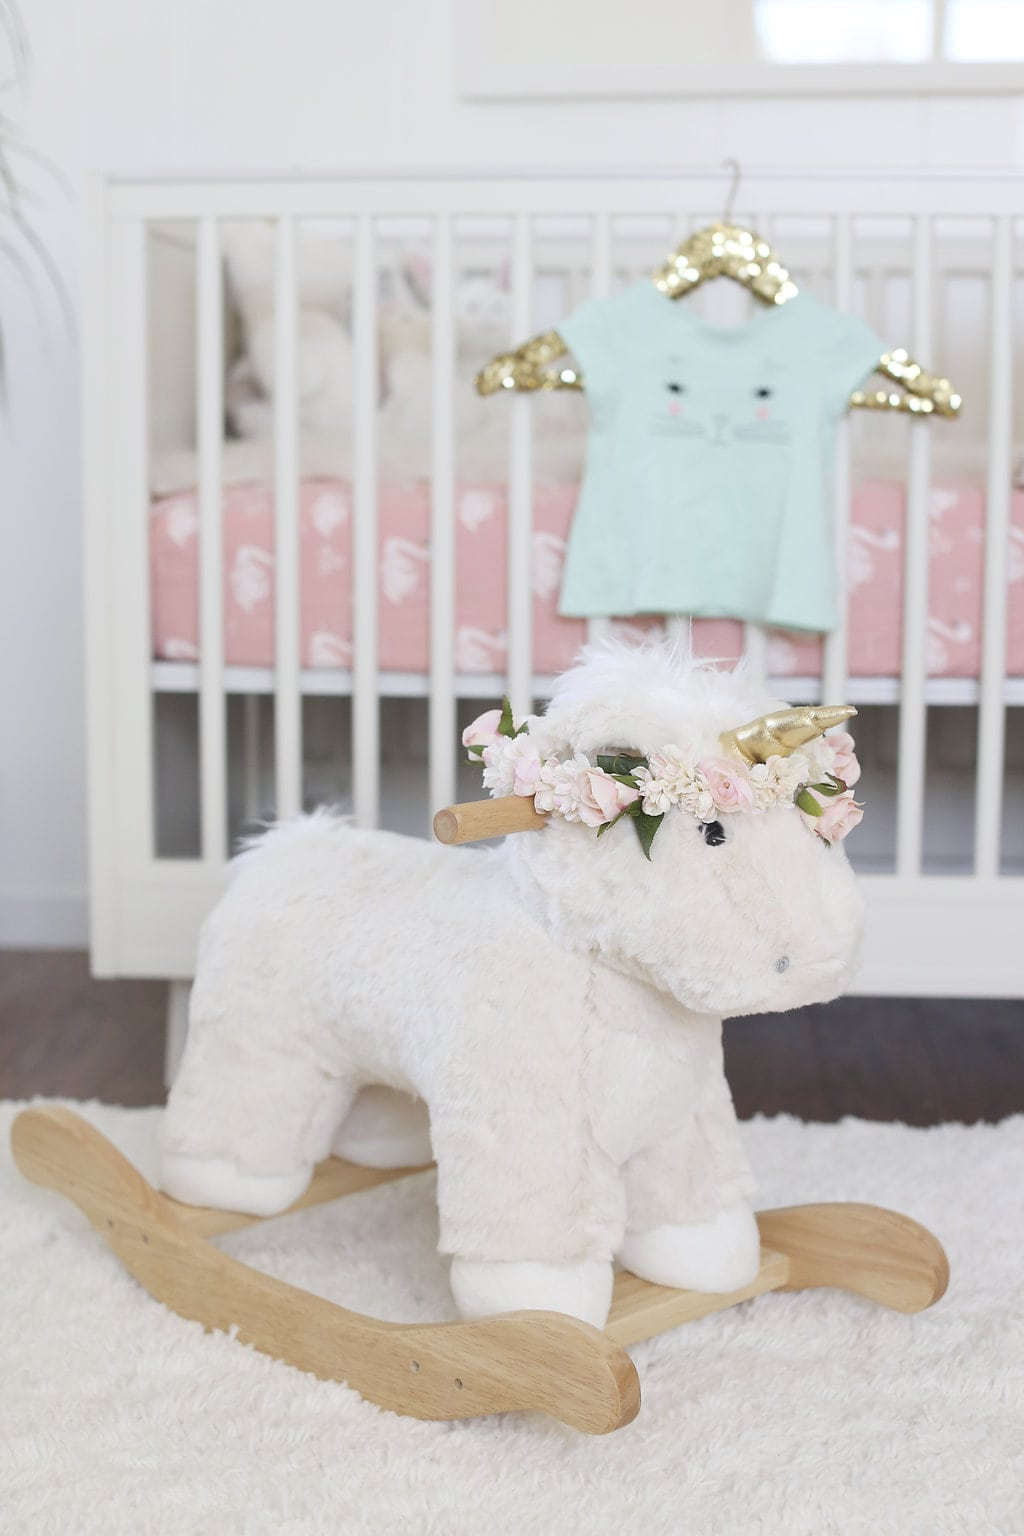 MELISSA'S ADORABLY CHIC PINK & WHITE NURSERY REVEAL